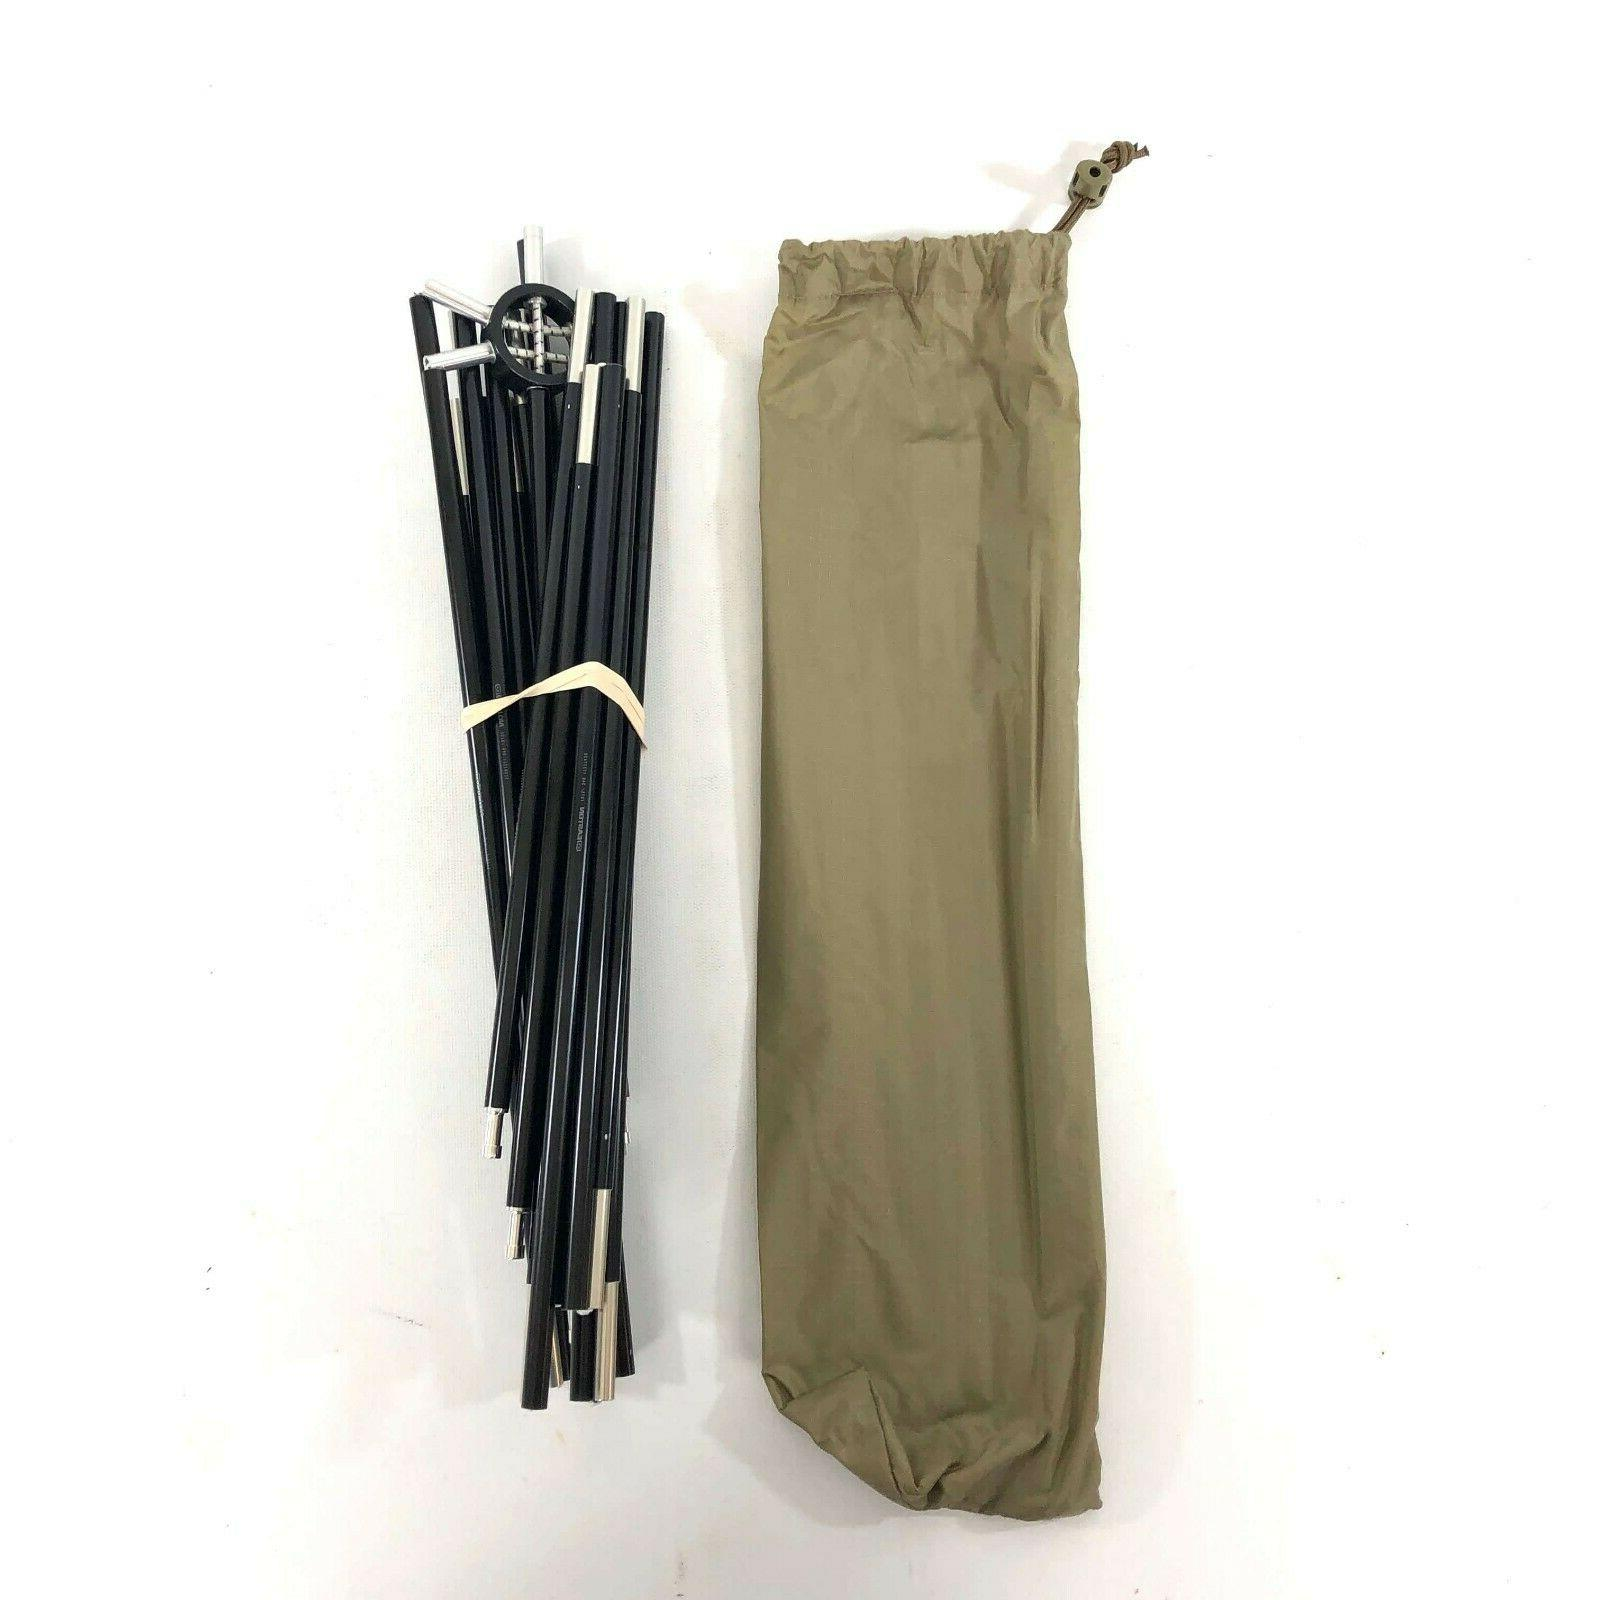 Litefighter 1 Individual System OCP Portable Tent